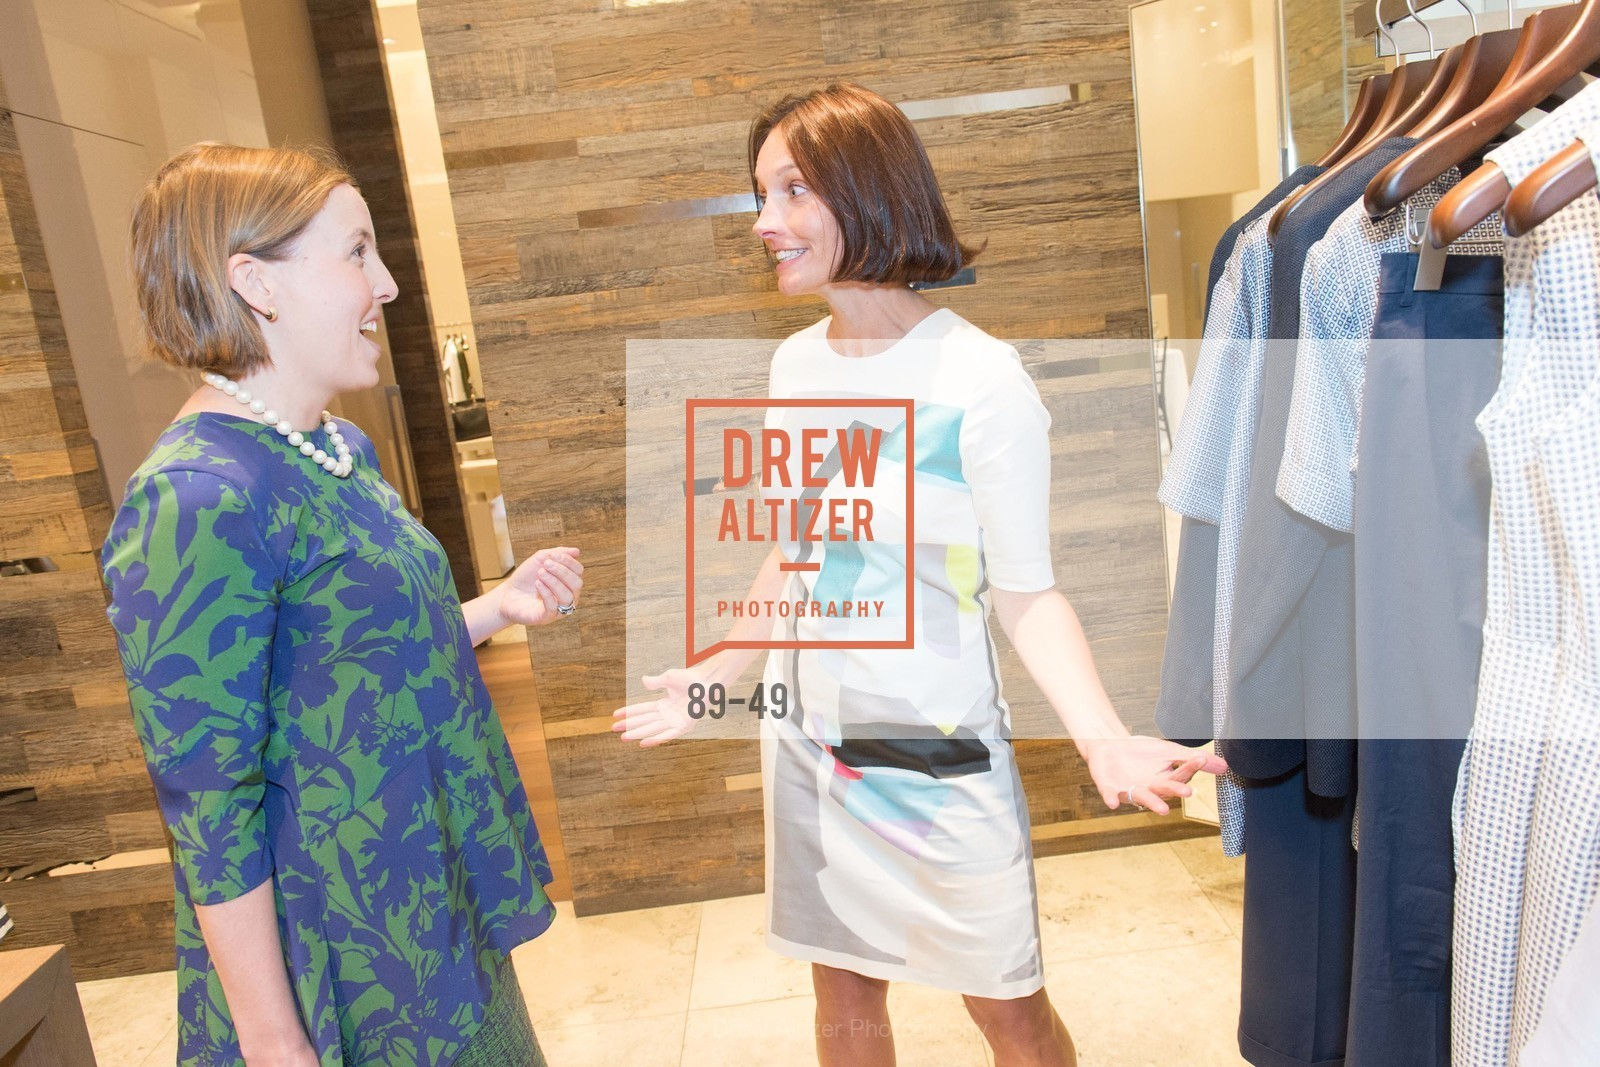 Katie Rothschild, Betsy McDermott, Luncheon Hosted by Max Mara, Max Mara. 175 Post St, San Francisco, CA 94108, April 21st, 2015,Drew Altizer, Drew Altizer Photography, full-service agency, private events, San Francisco photographer, photographer california